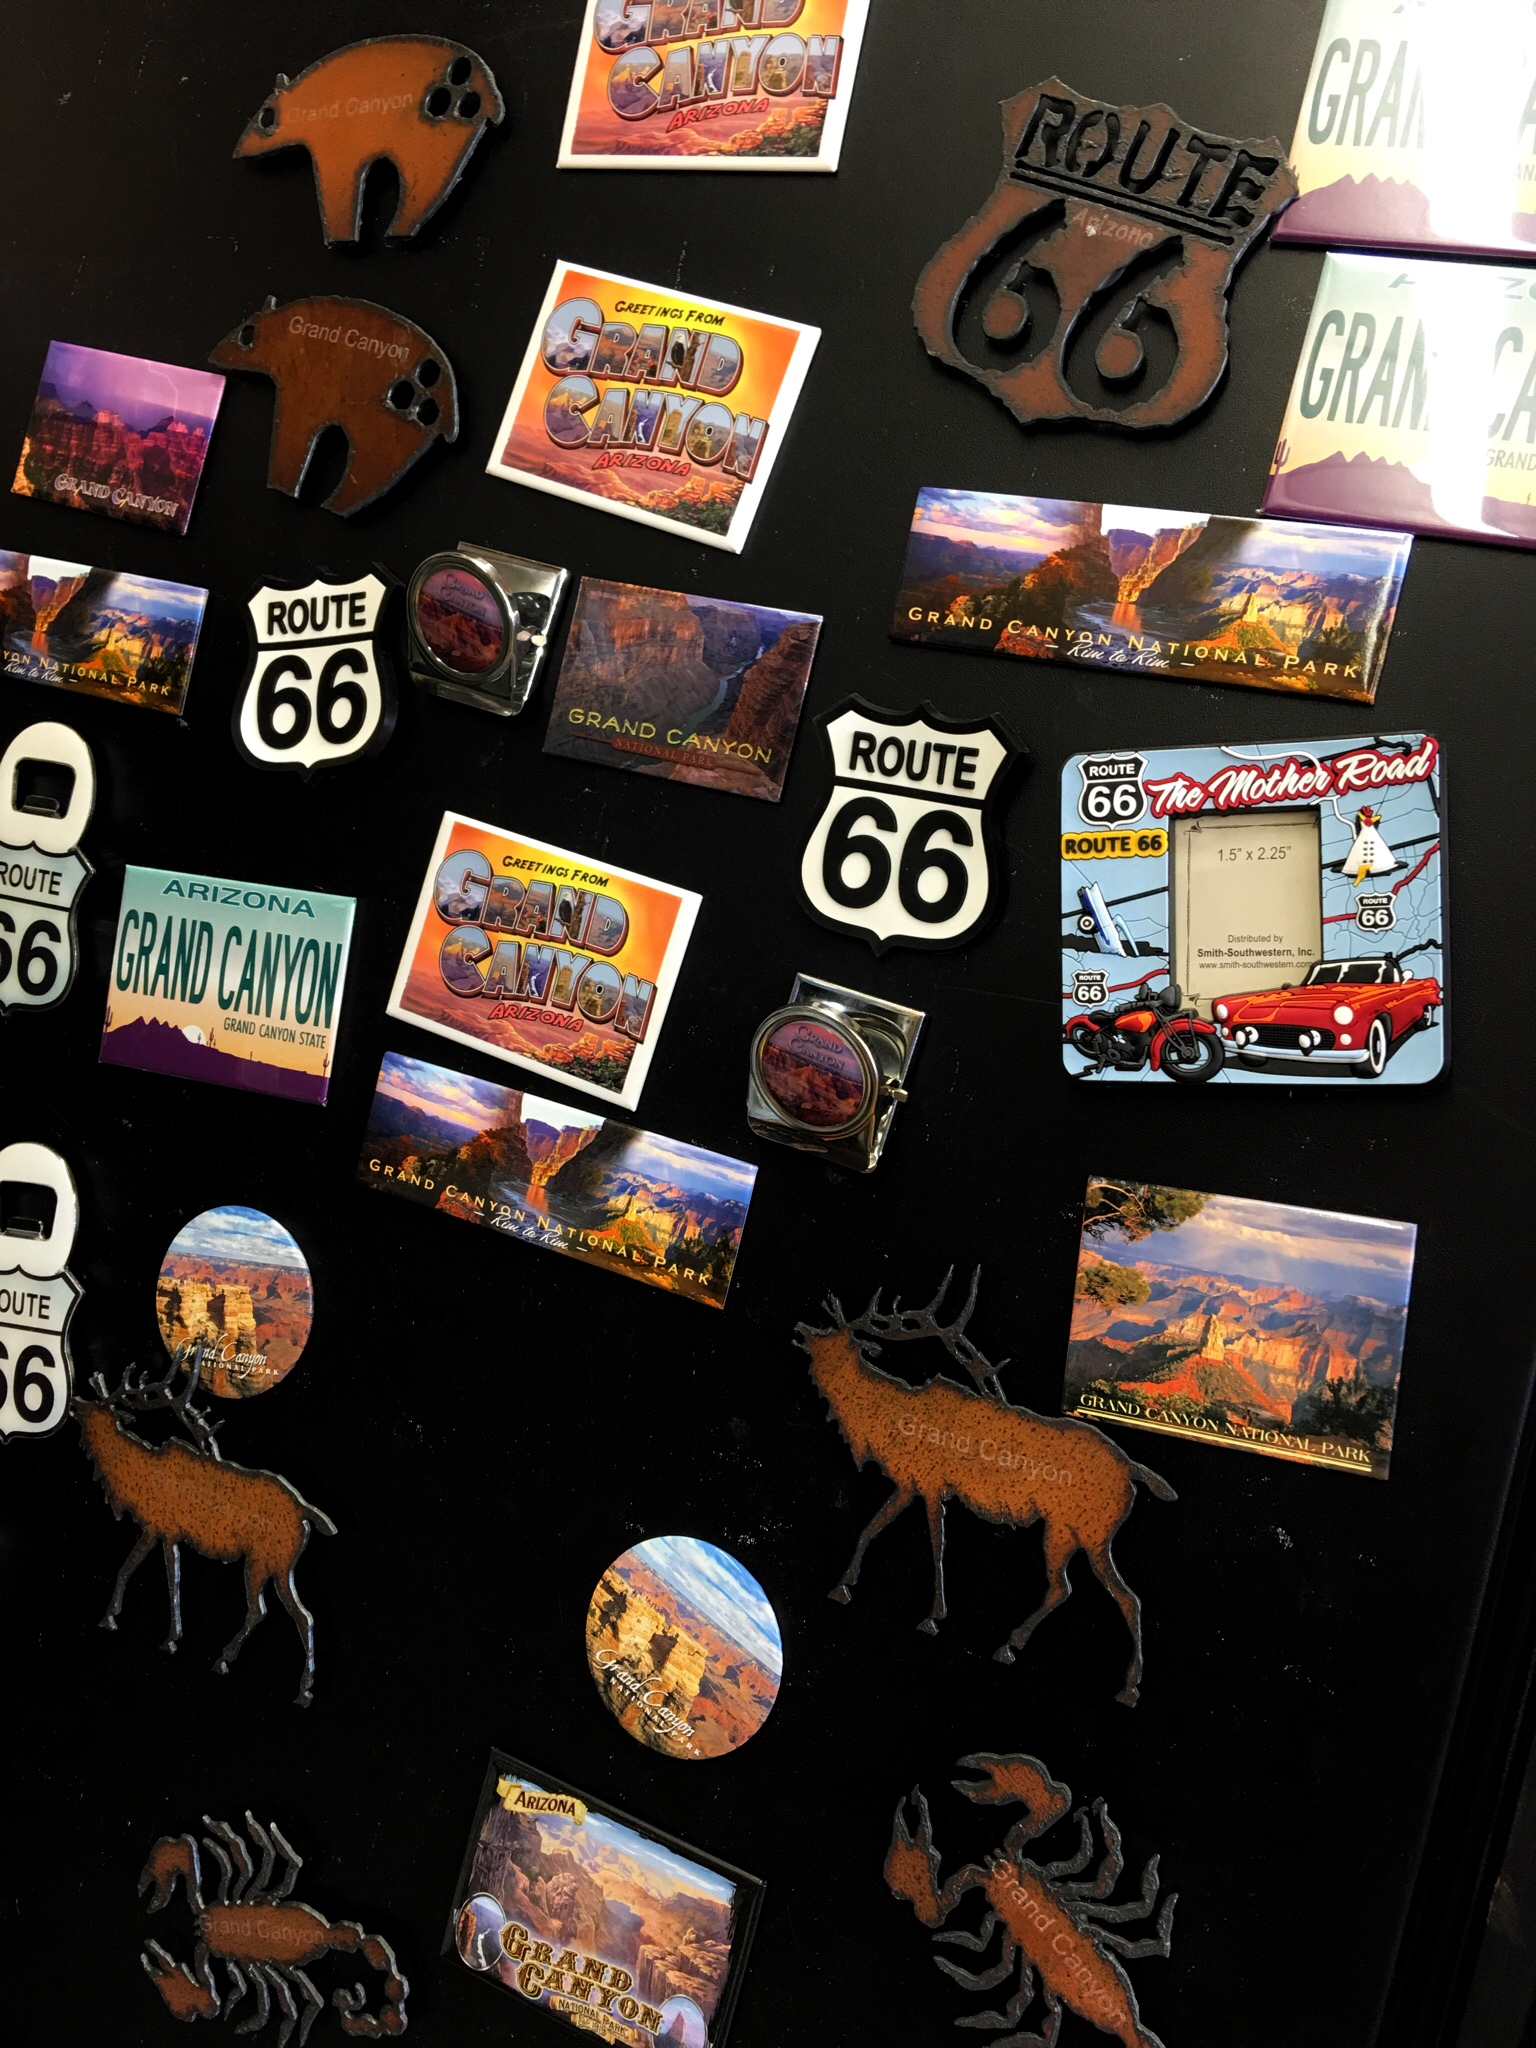 Route 66 memorabilia at an internet cafe outside of Grand Canyon National Park in Arizona.